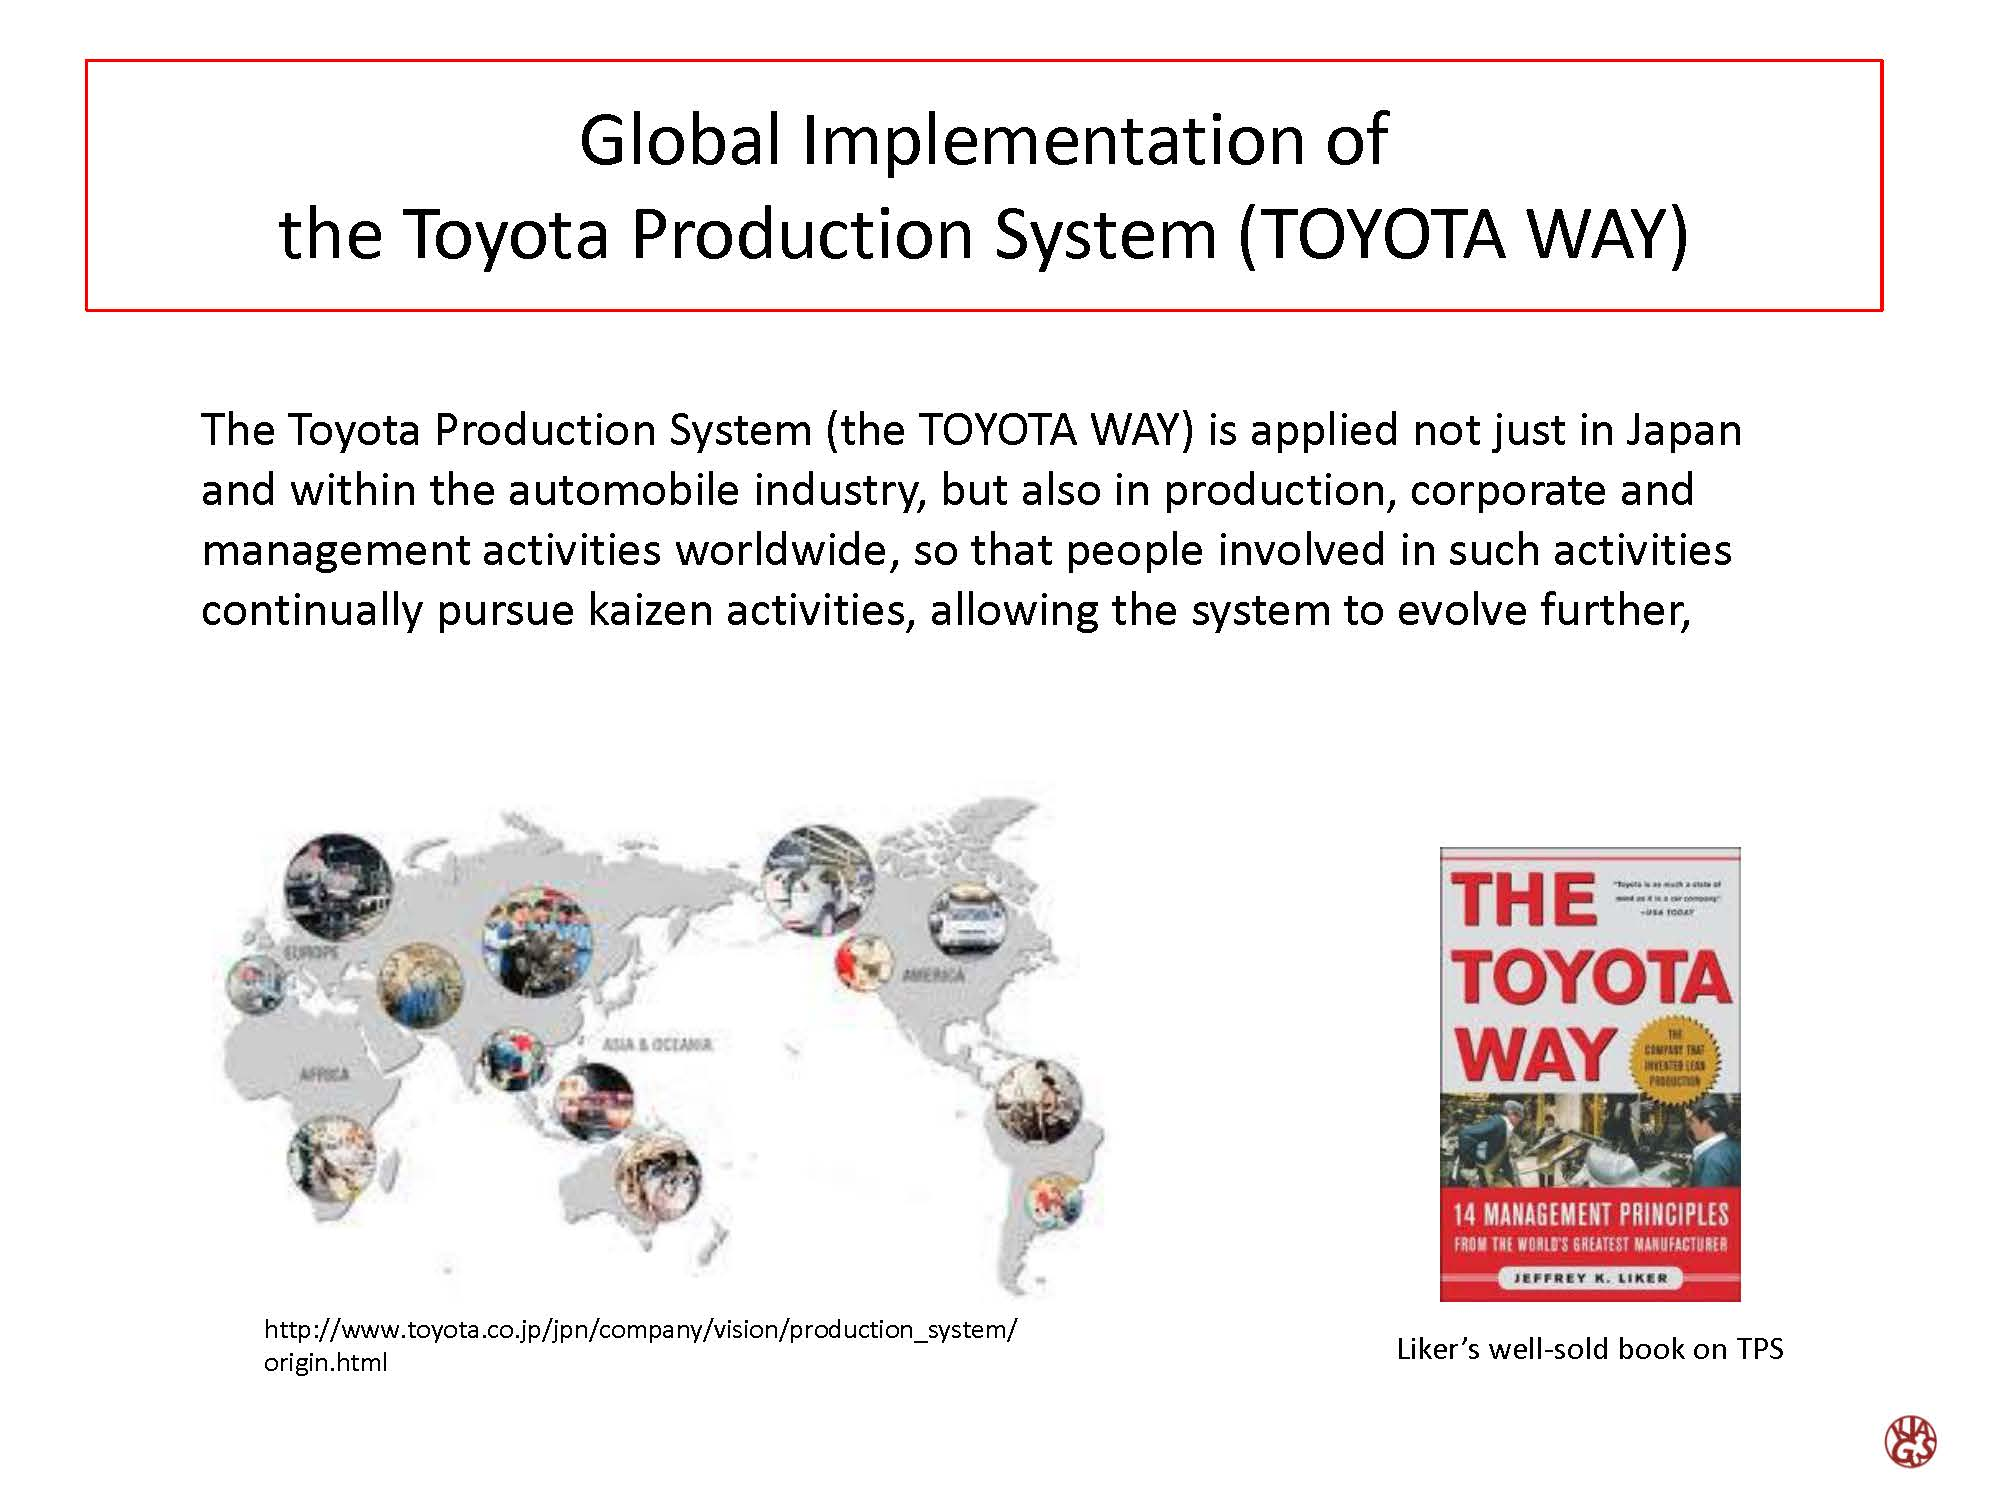 Global implementation of the toyota production system toyota way